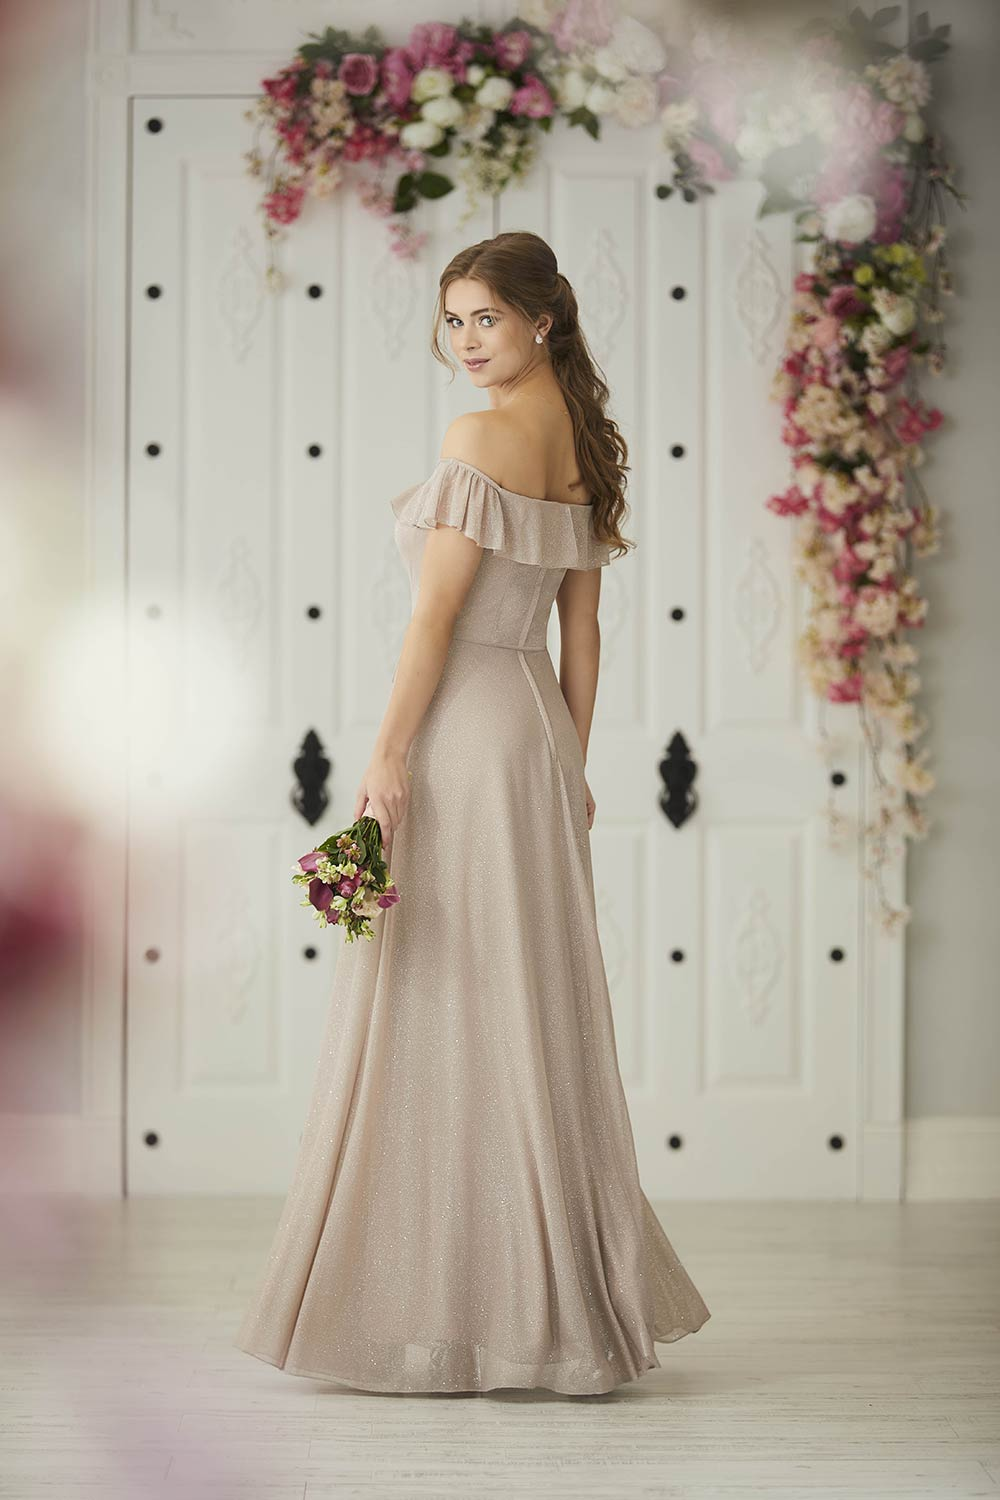 bridesmaid-dresses-jacquelin-bridals-canada-27293